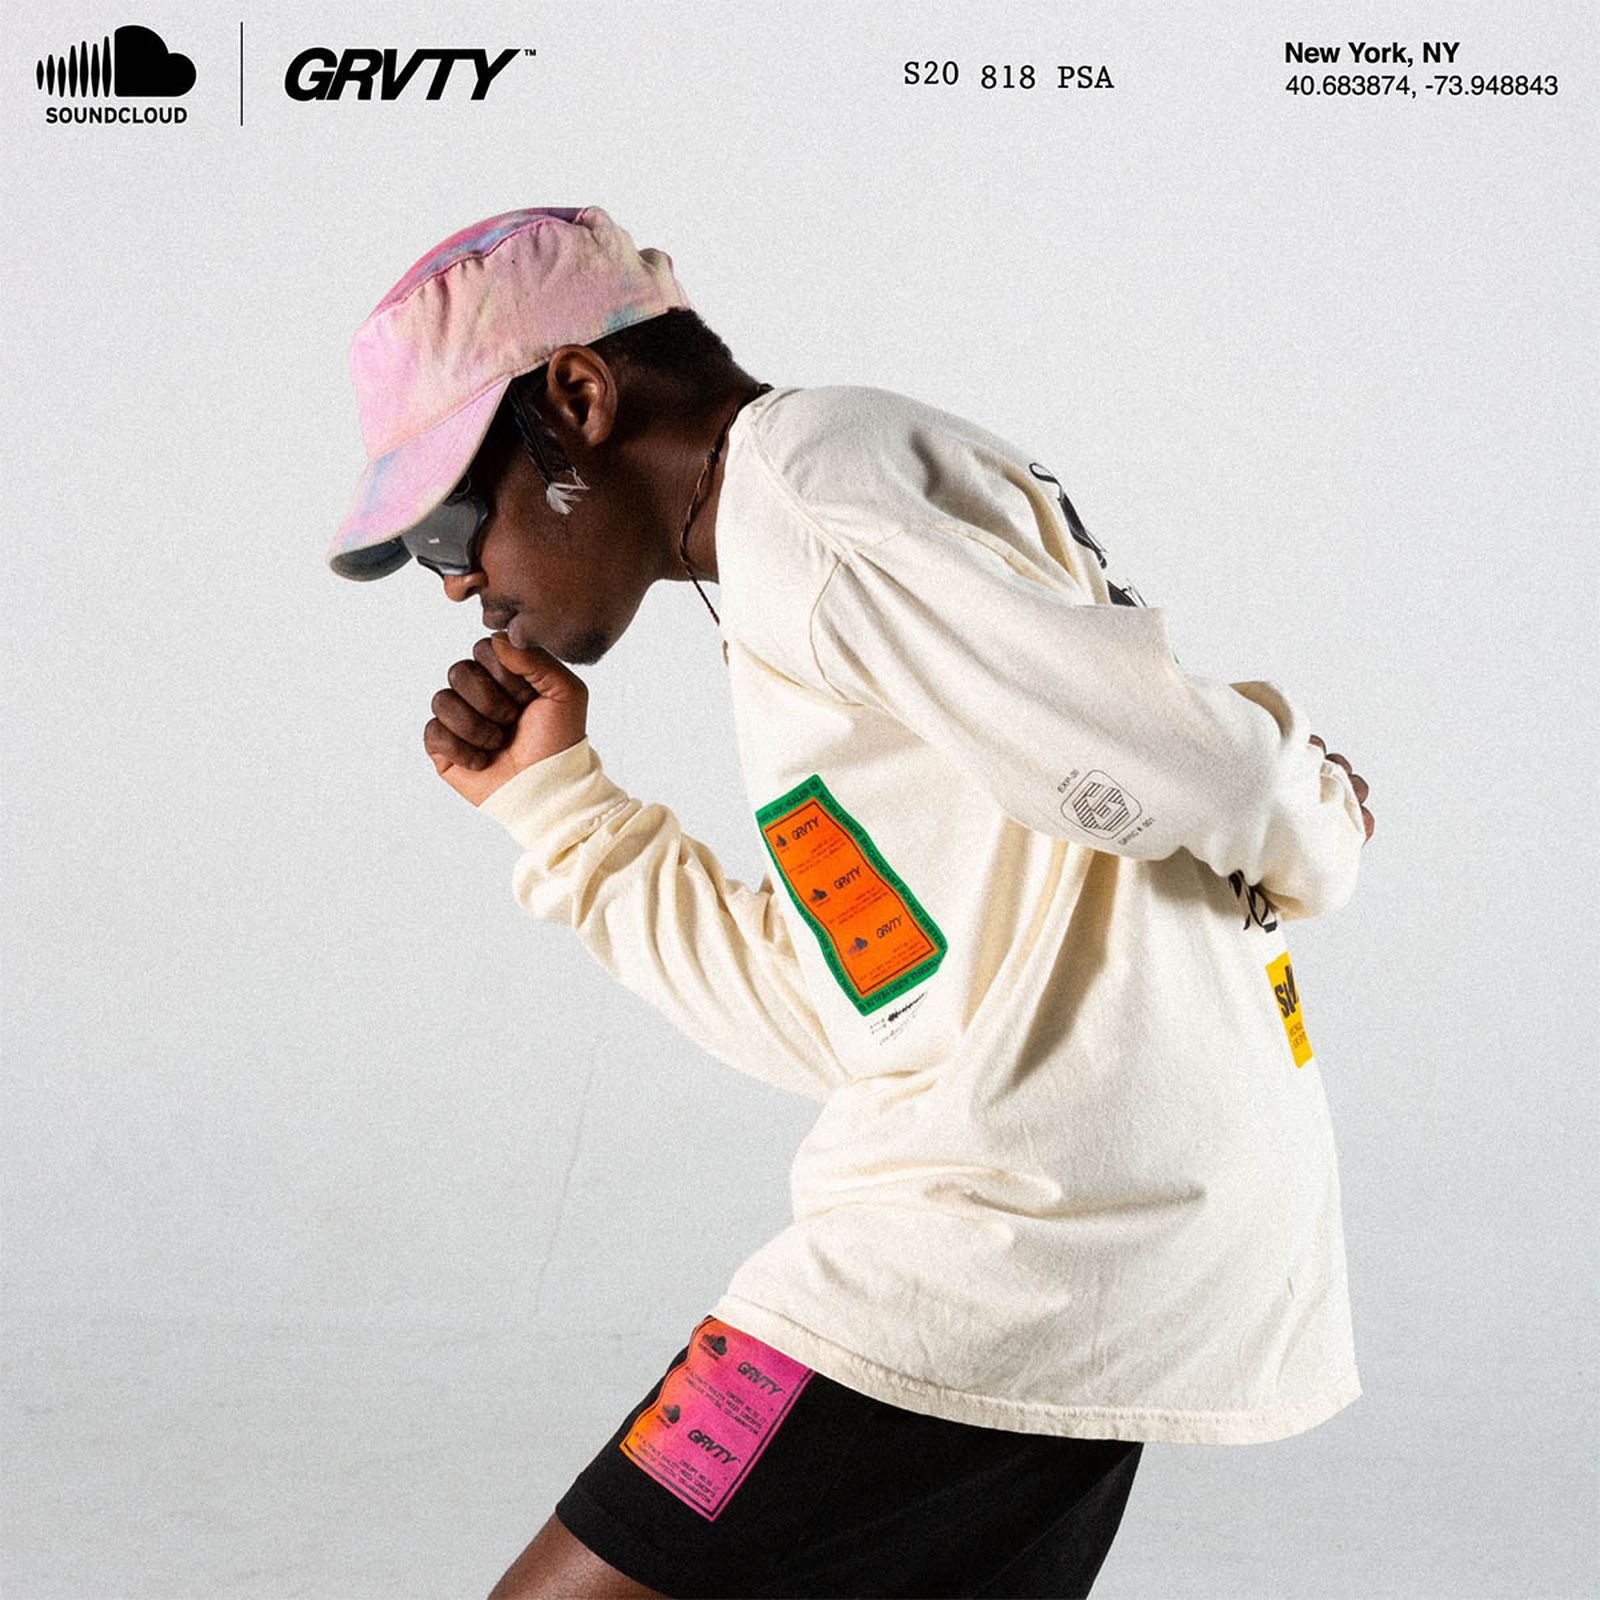 soundcloud-grvty-01